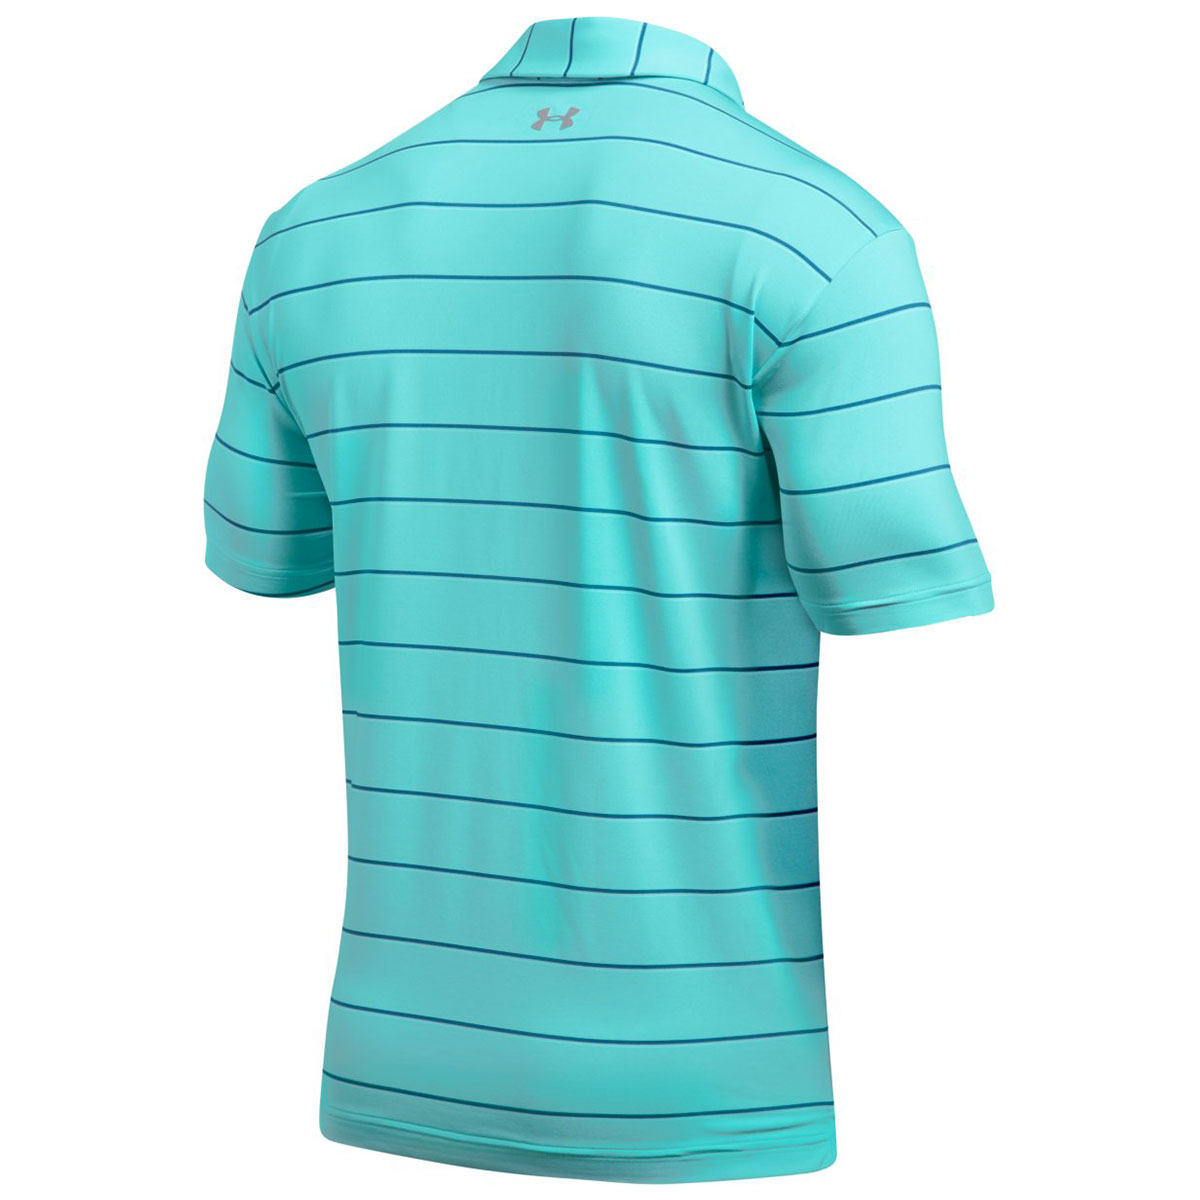 Under-Armour-Mens-UA-Playoff-Performance-Golf-Polo-Shirt-33-OFF-RRP thumbnail 38